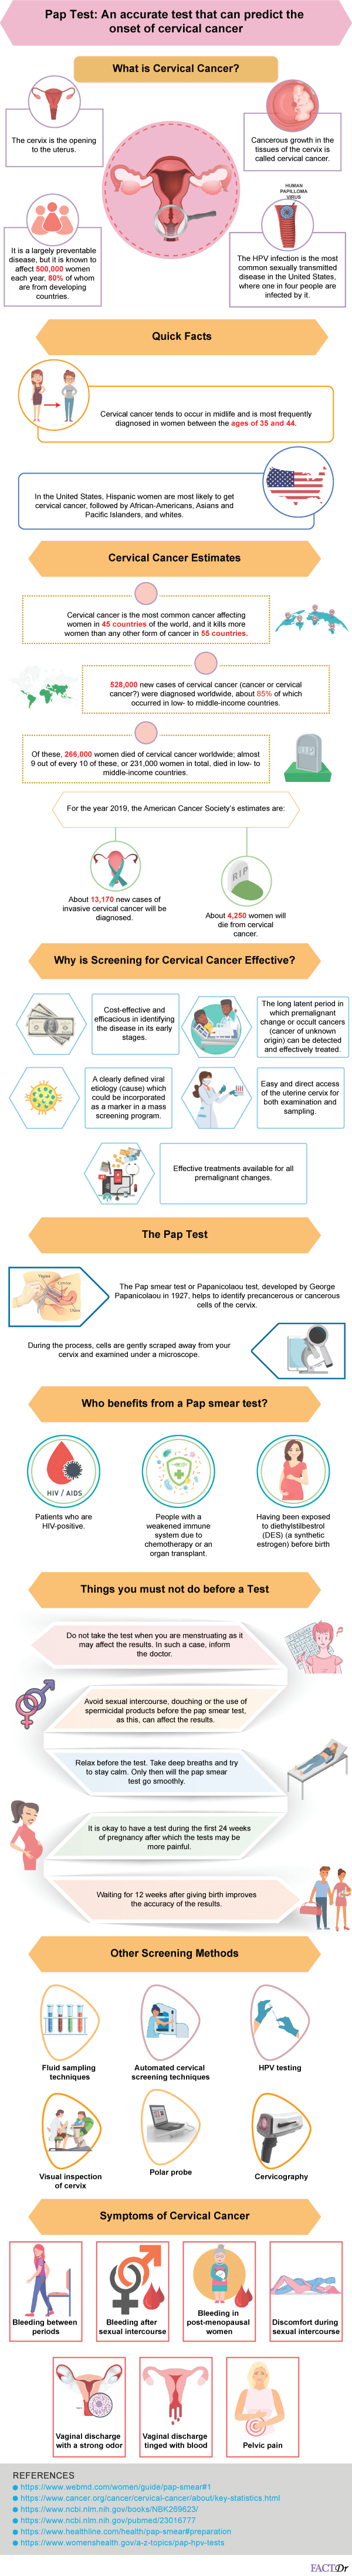 Pap-smear-infographic